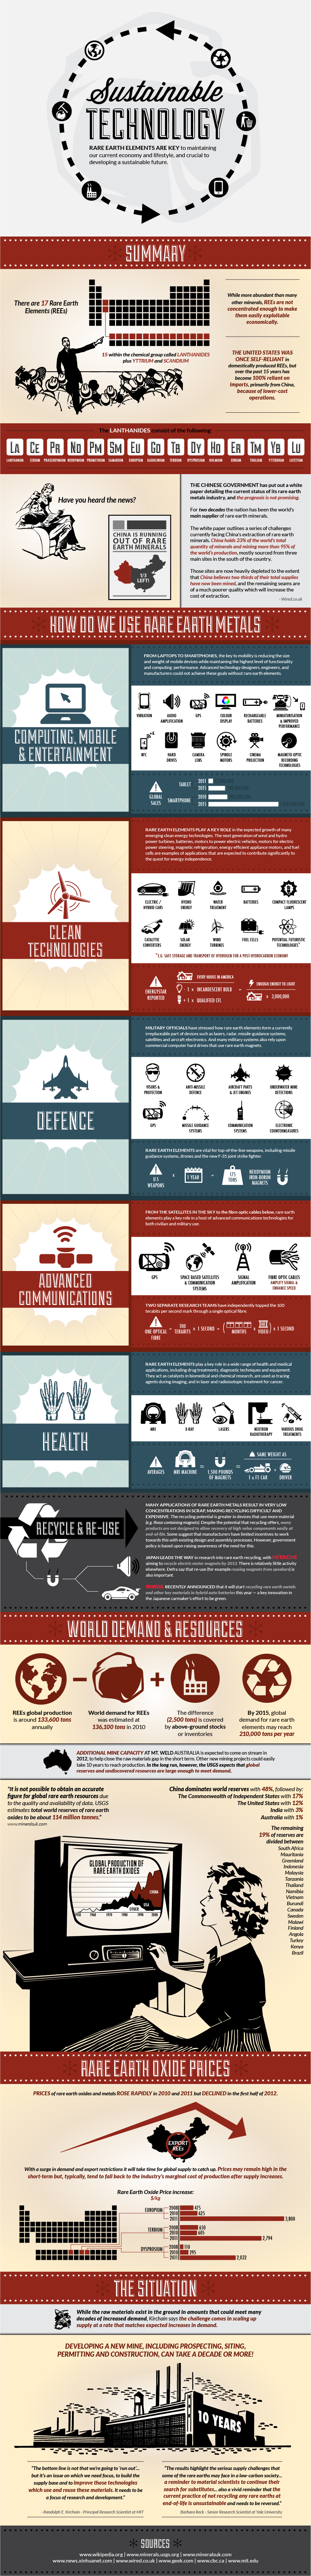 Sustainable Technology [Infographic]